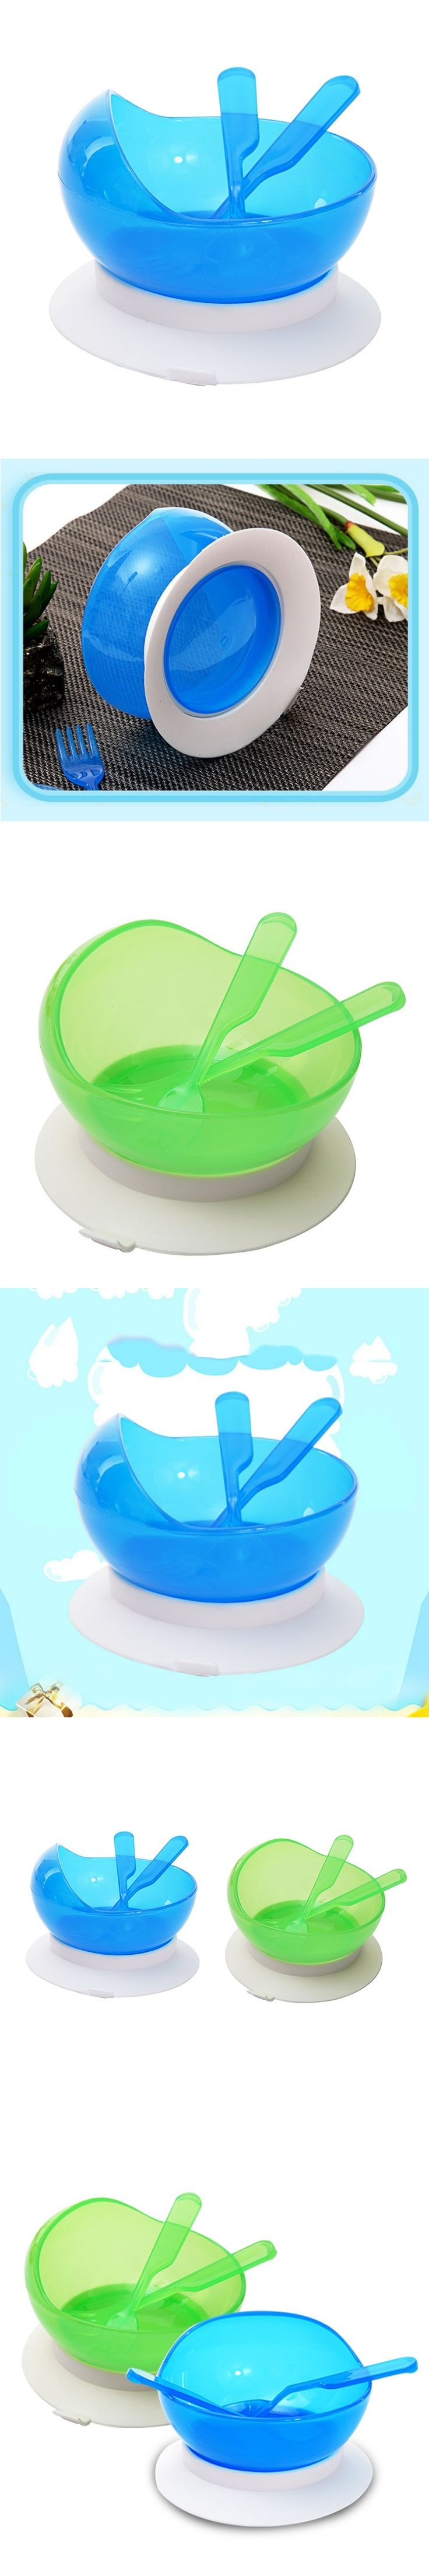 1set Baby Tableware Baby Learn Dishes With Suction Cup Help the Bowl of a Spoon Temperature Measurement Drop the Baby Bowl Cups